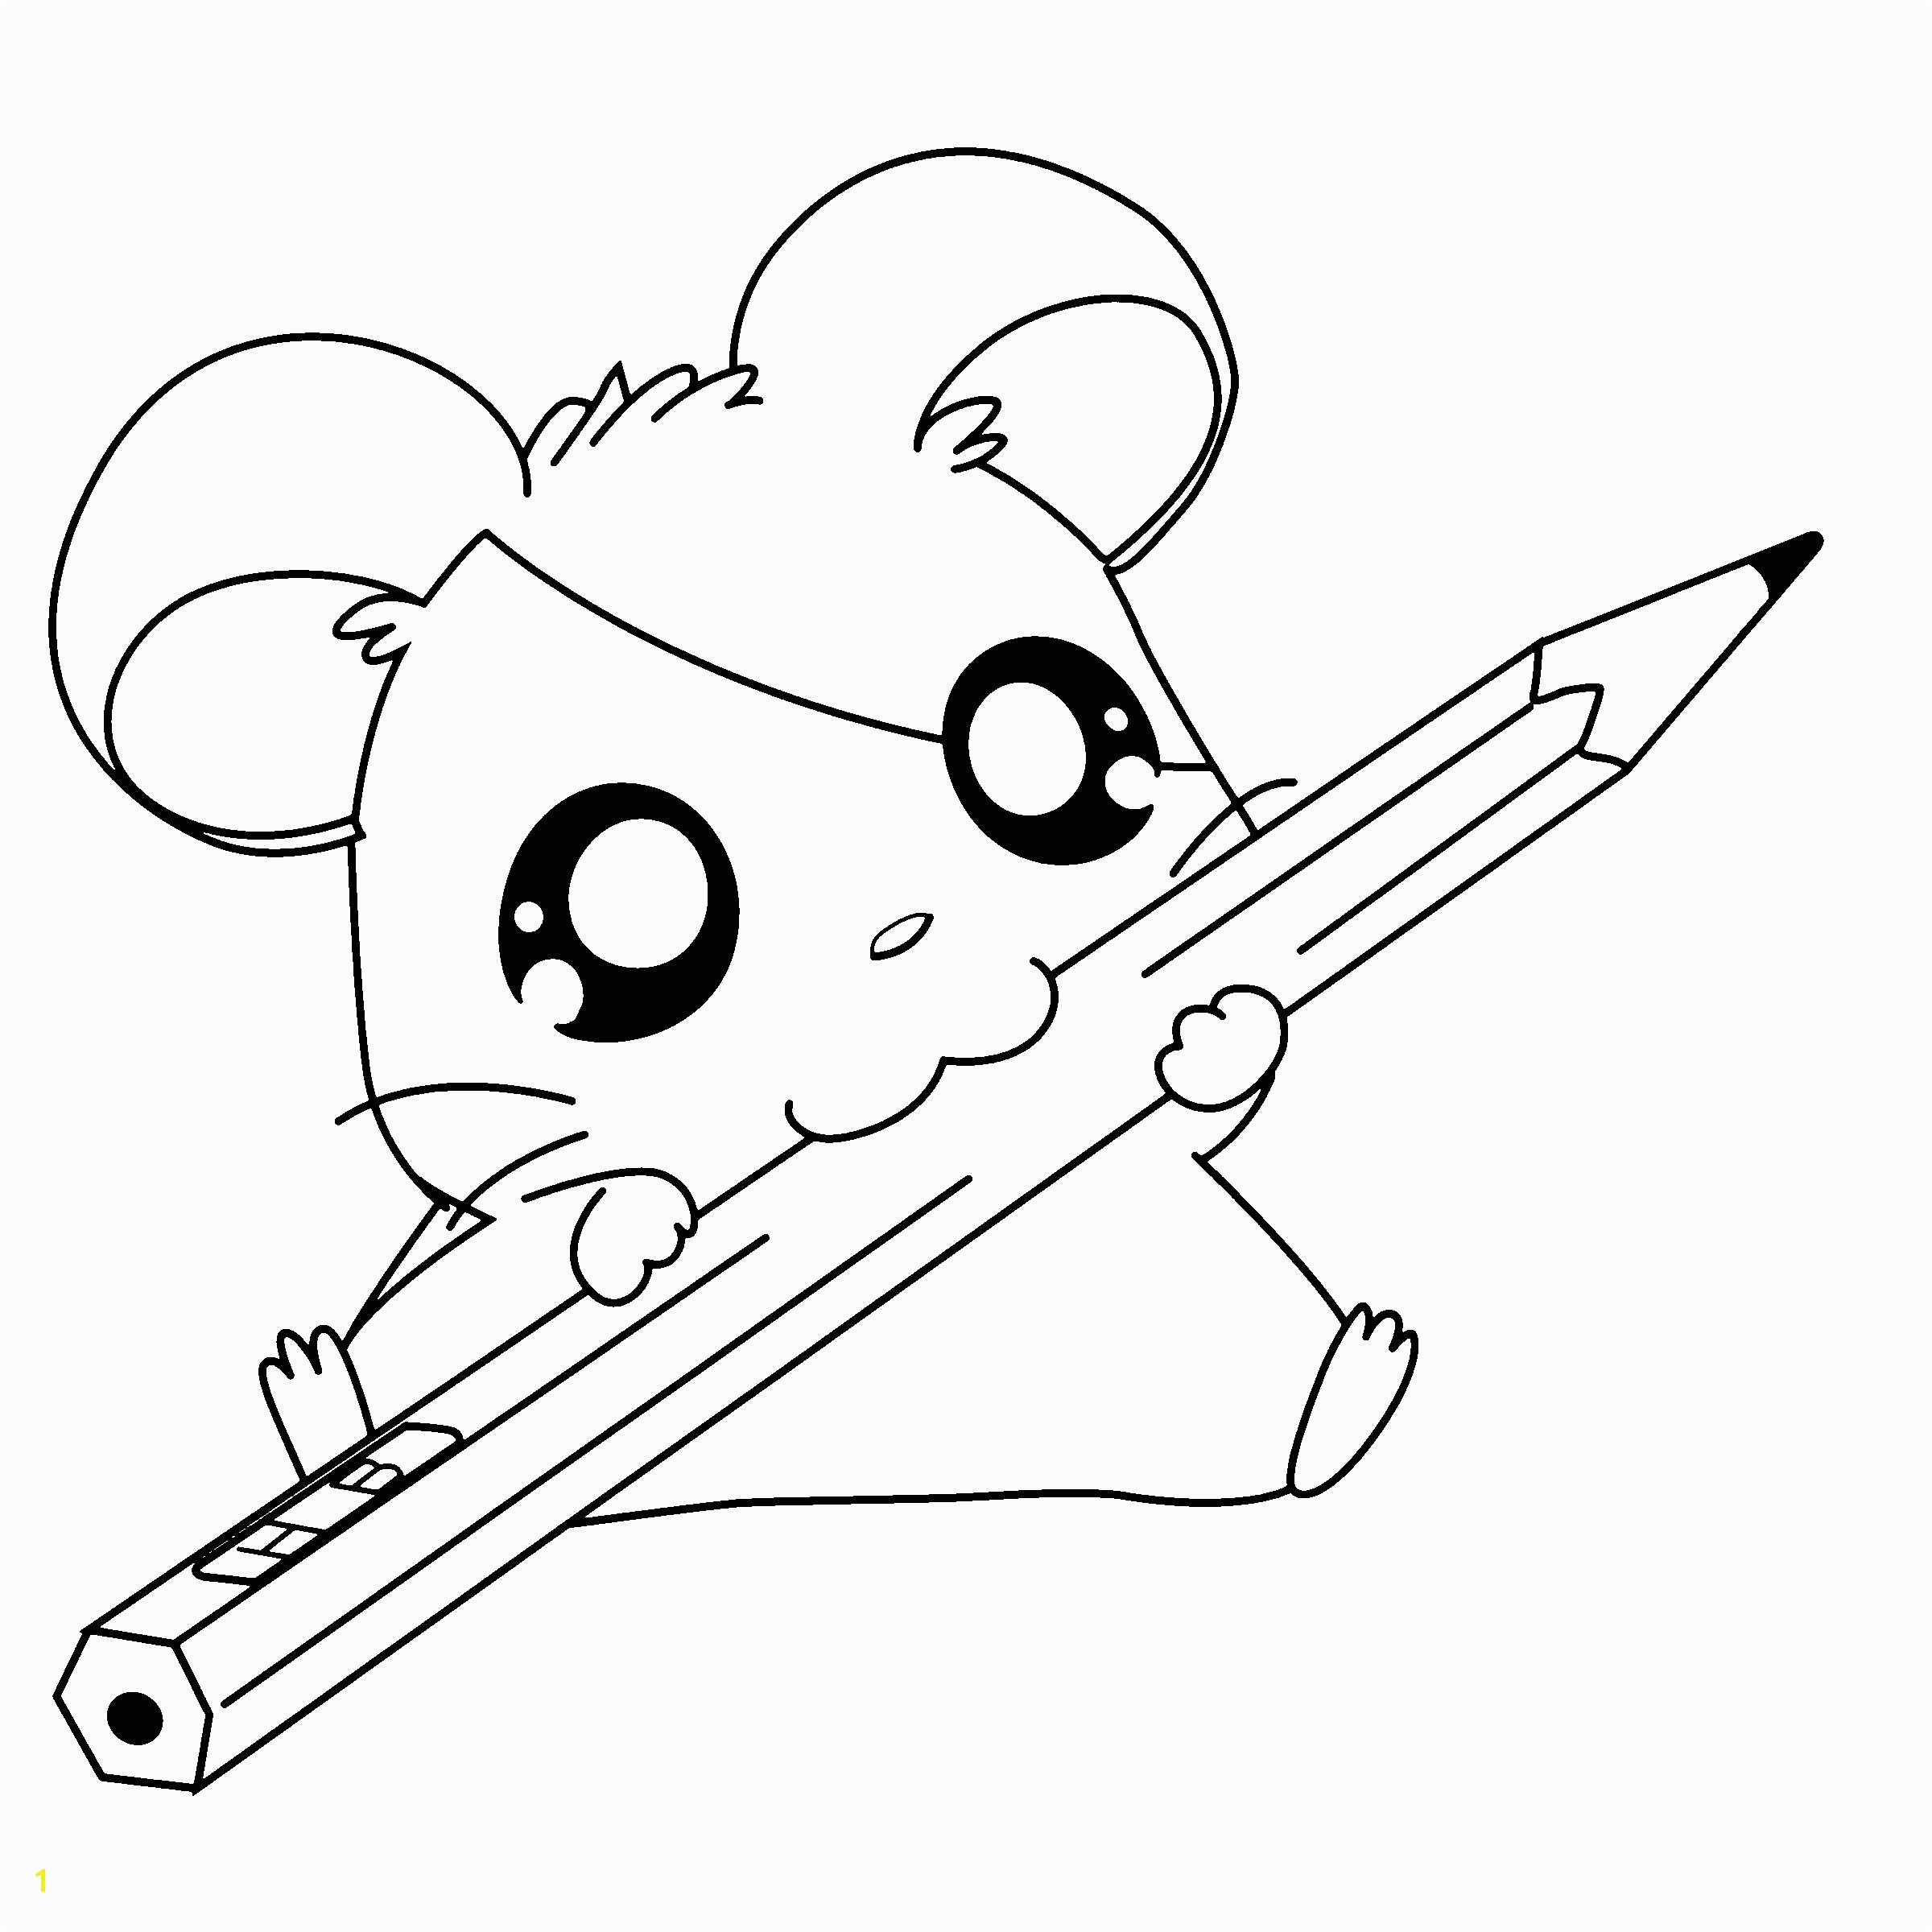 Very Cute Animal Coloring Pages Cute Colouring Pages for Kids New Homely Idea Cute Animal Coloring